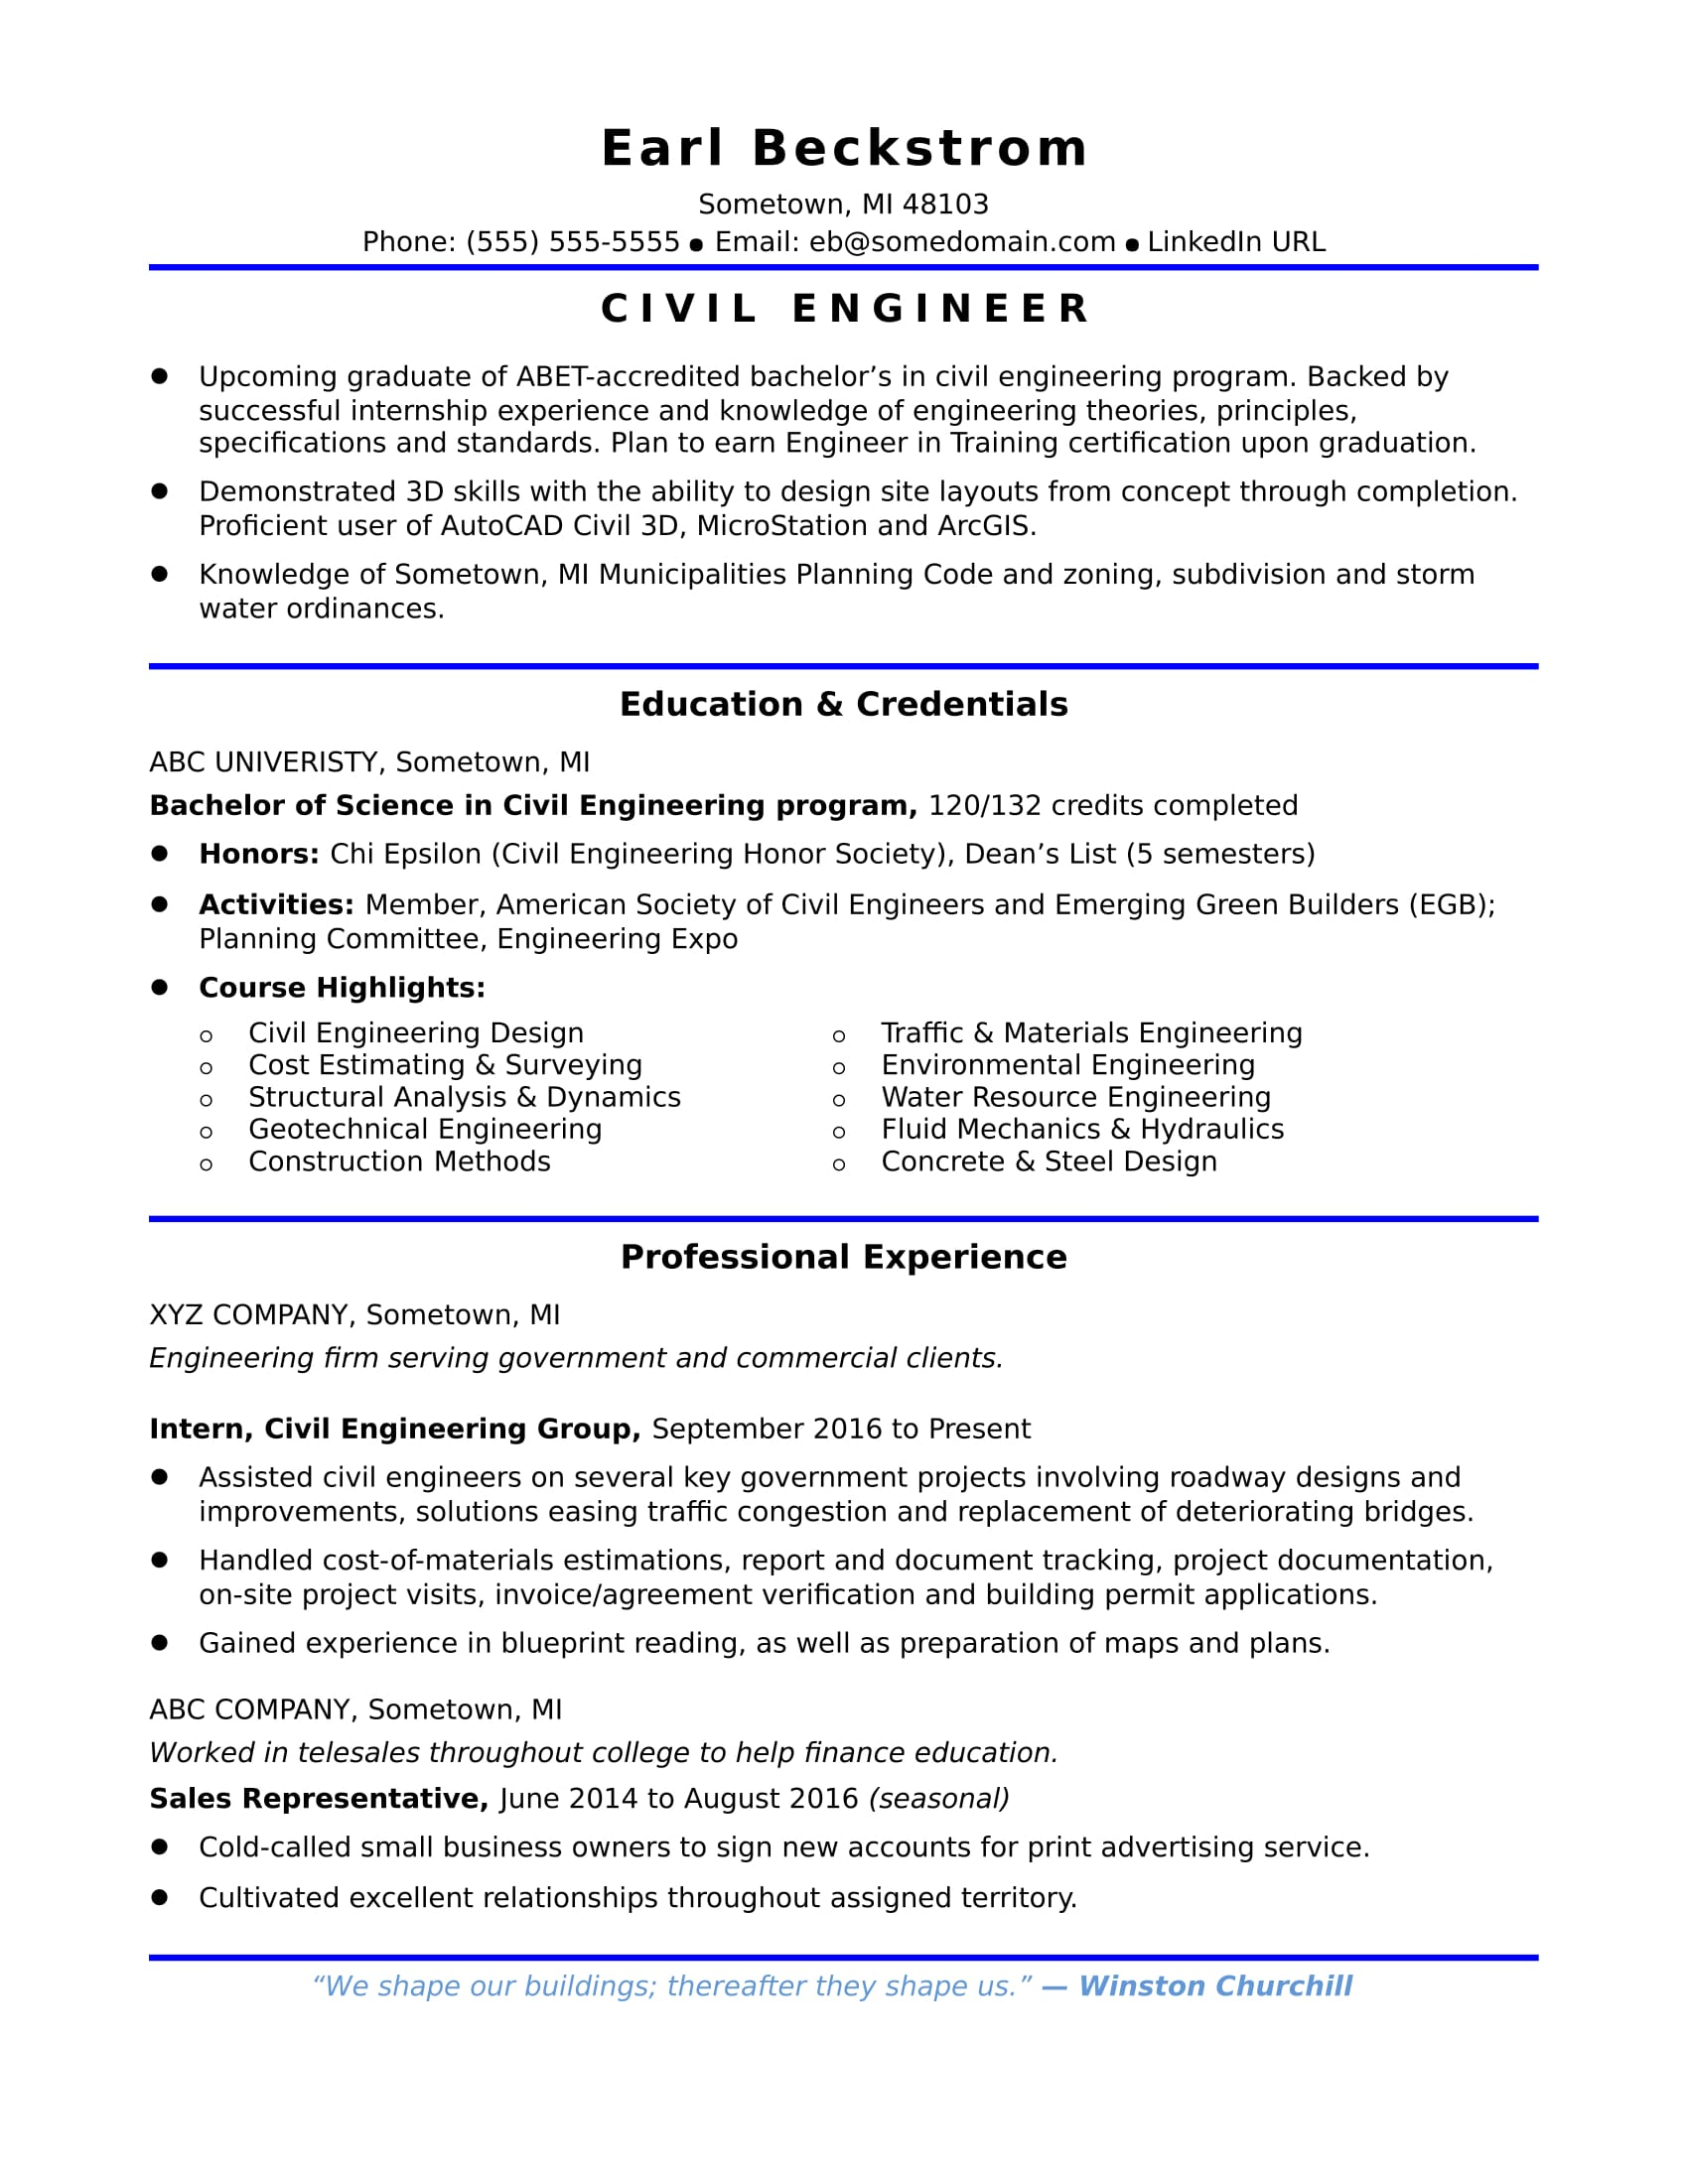 Service Engineer Resume Format Sample Resume For An Entry Level Civil Engineer Monster